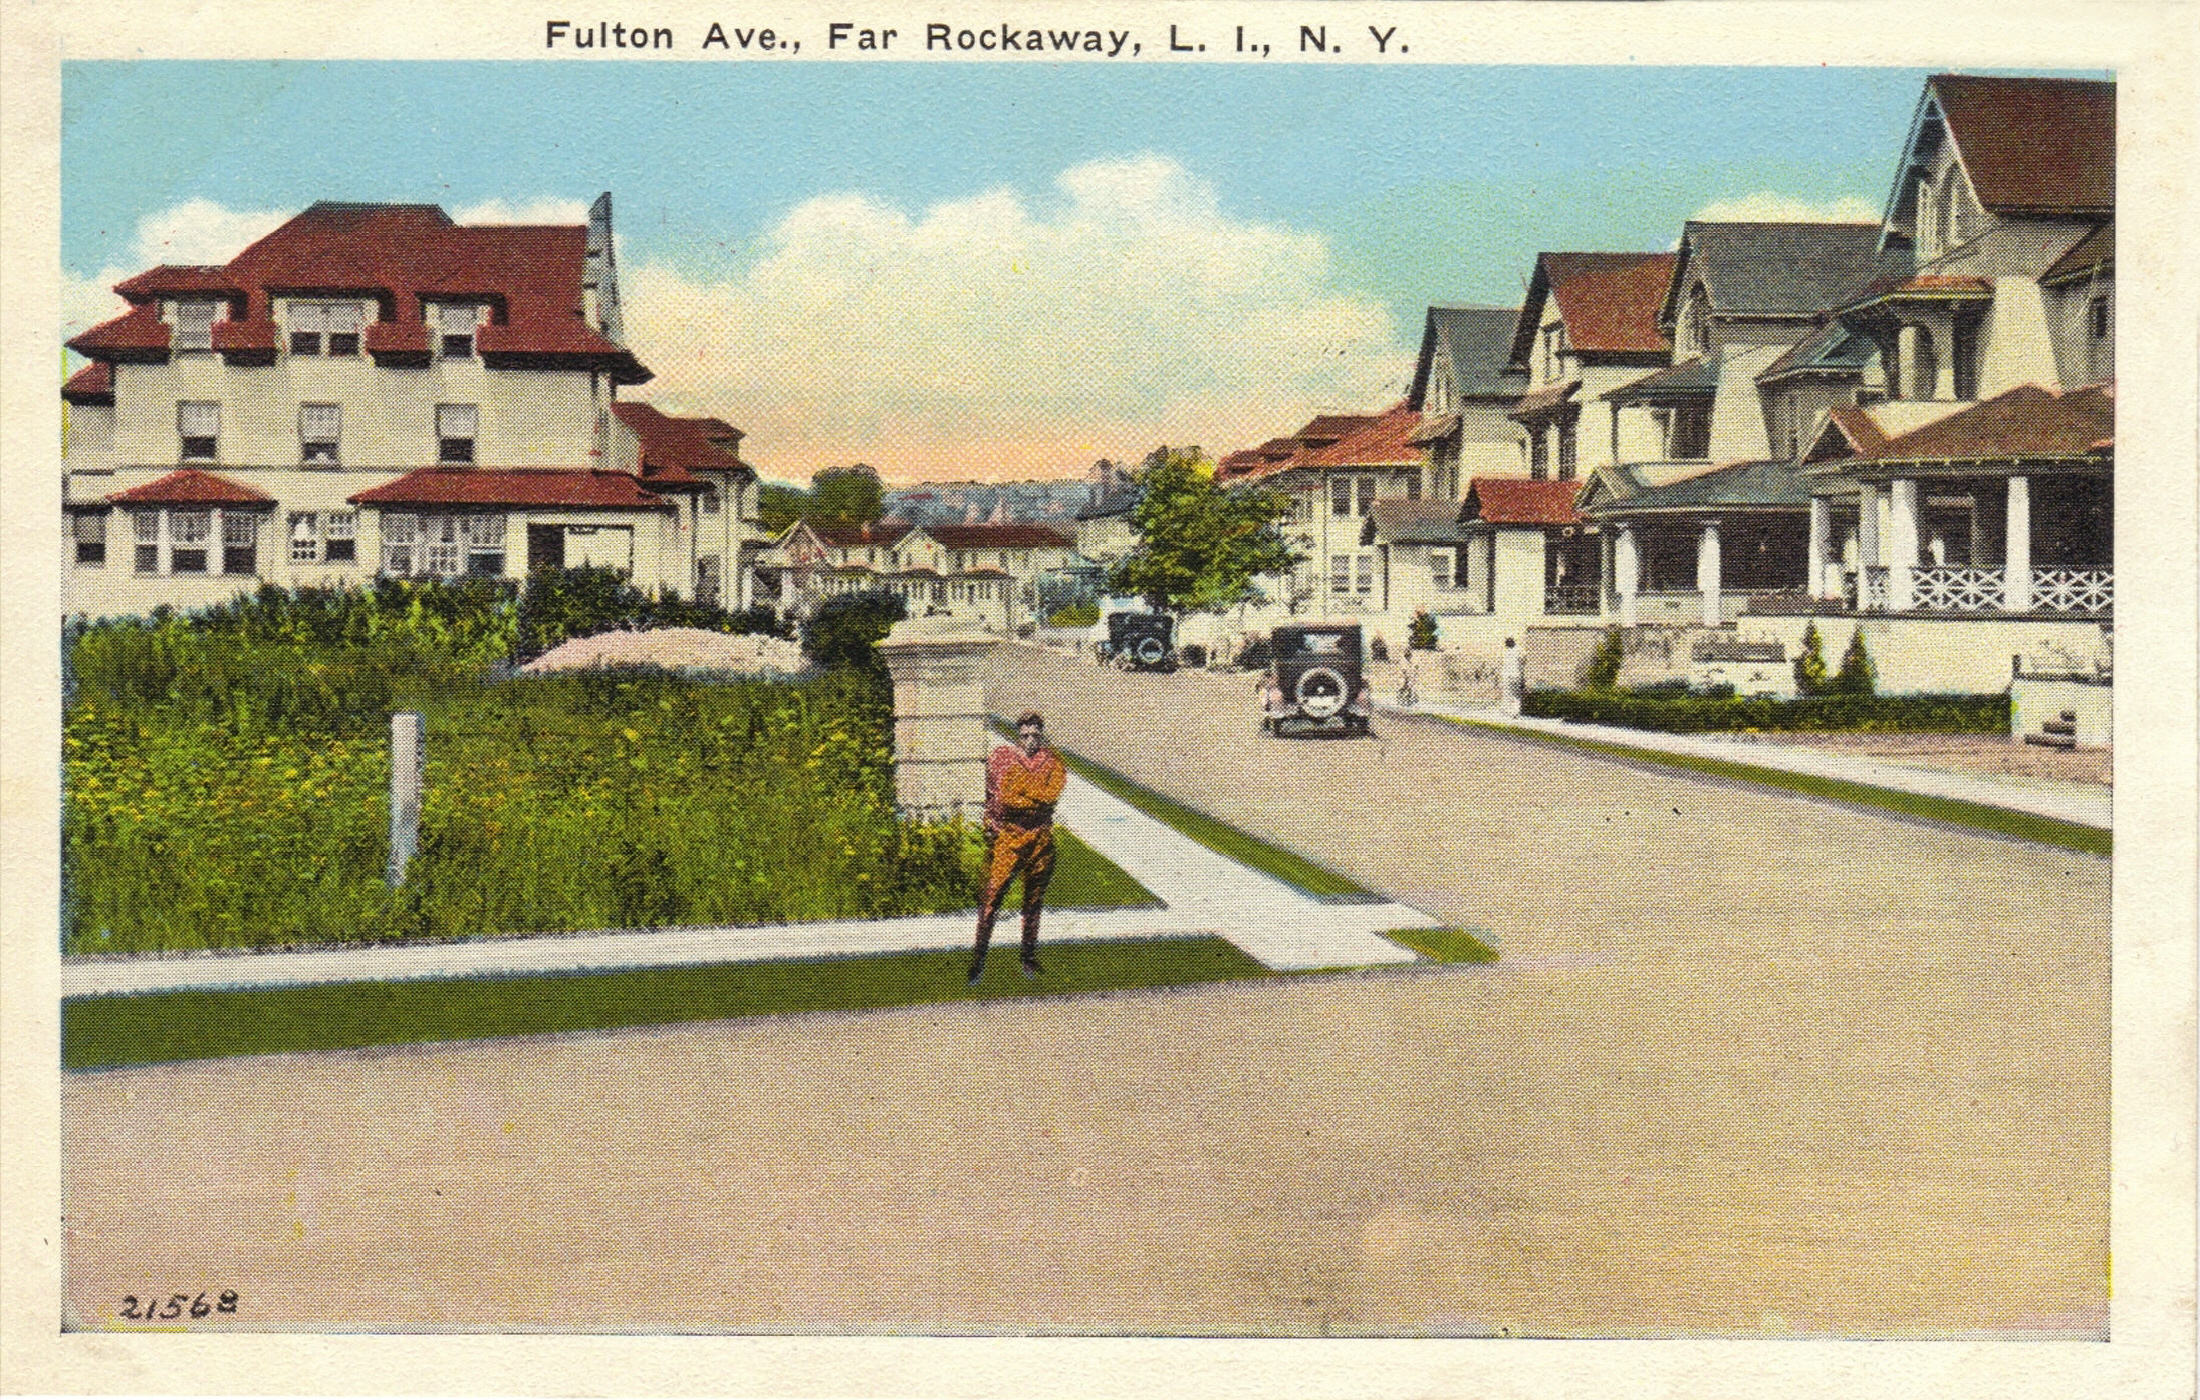 A Postcard View Of Beach 15th Street Which Was Named Fulton Avenue Before Many Far Rockaway Streets Were Given Beach Numbers. While The Changes Were Made In 1916, They Were Not Widely Used Until After WWI.    Photo courtesy of the  Leiman Library    and The Leiman Collection on  Rockawaymemories.com and information via Rockawaymemories.com